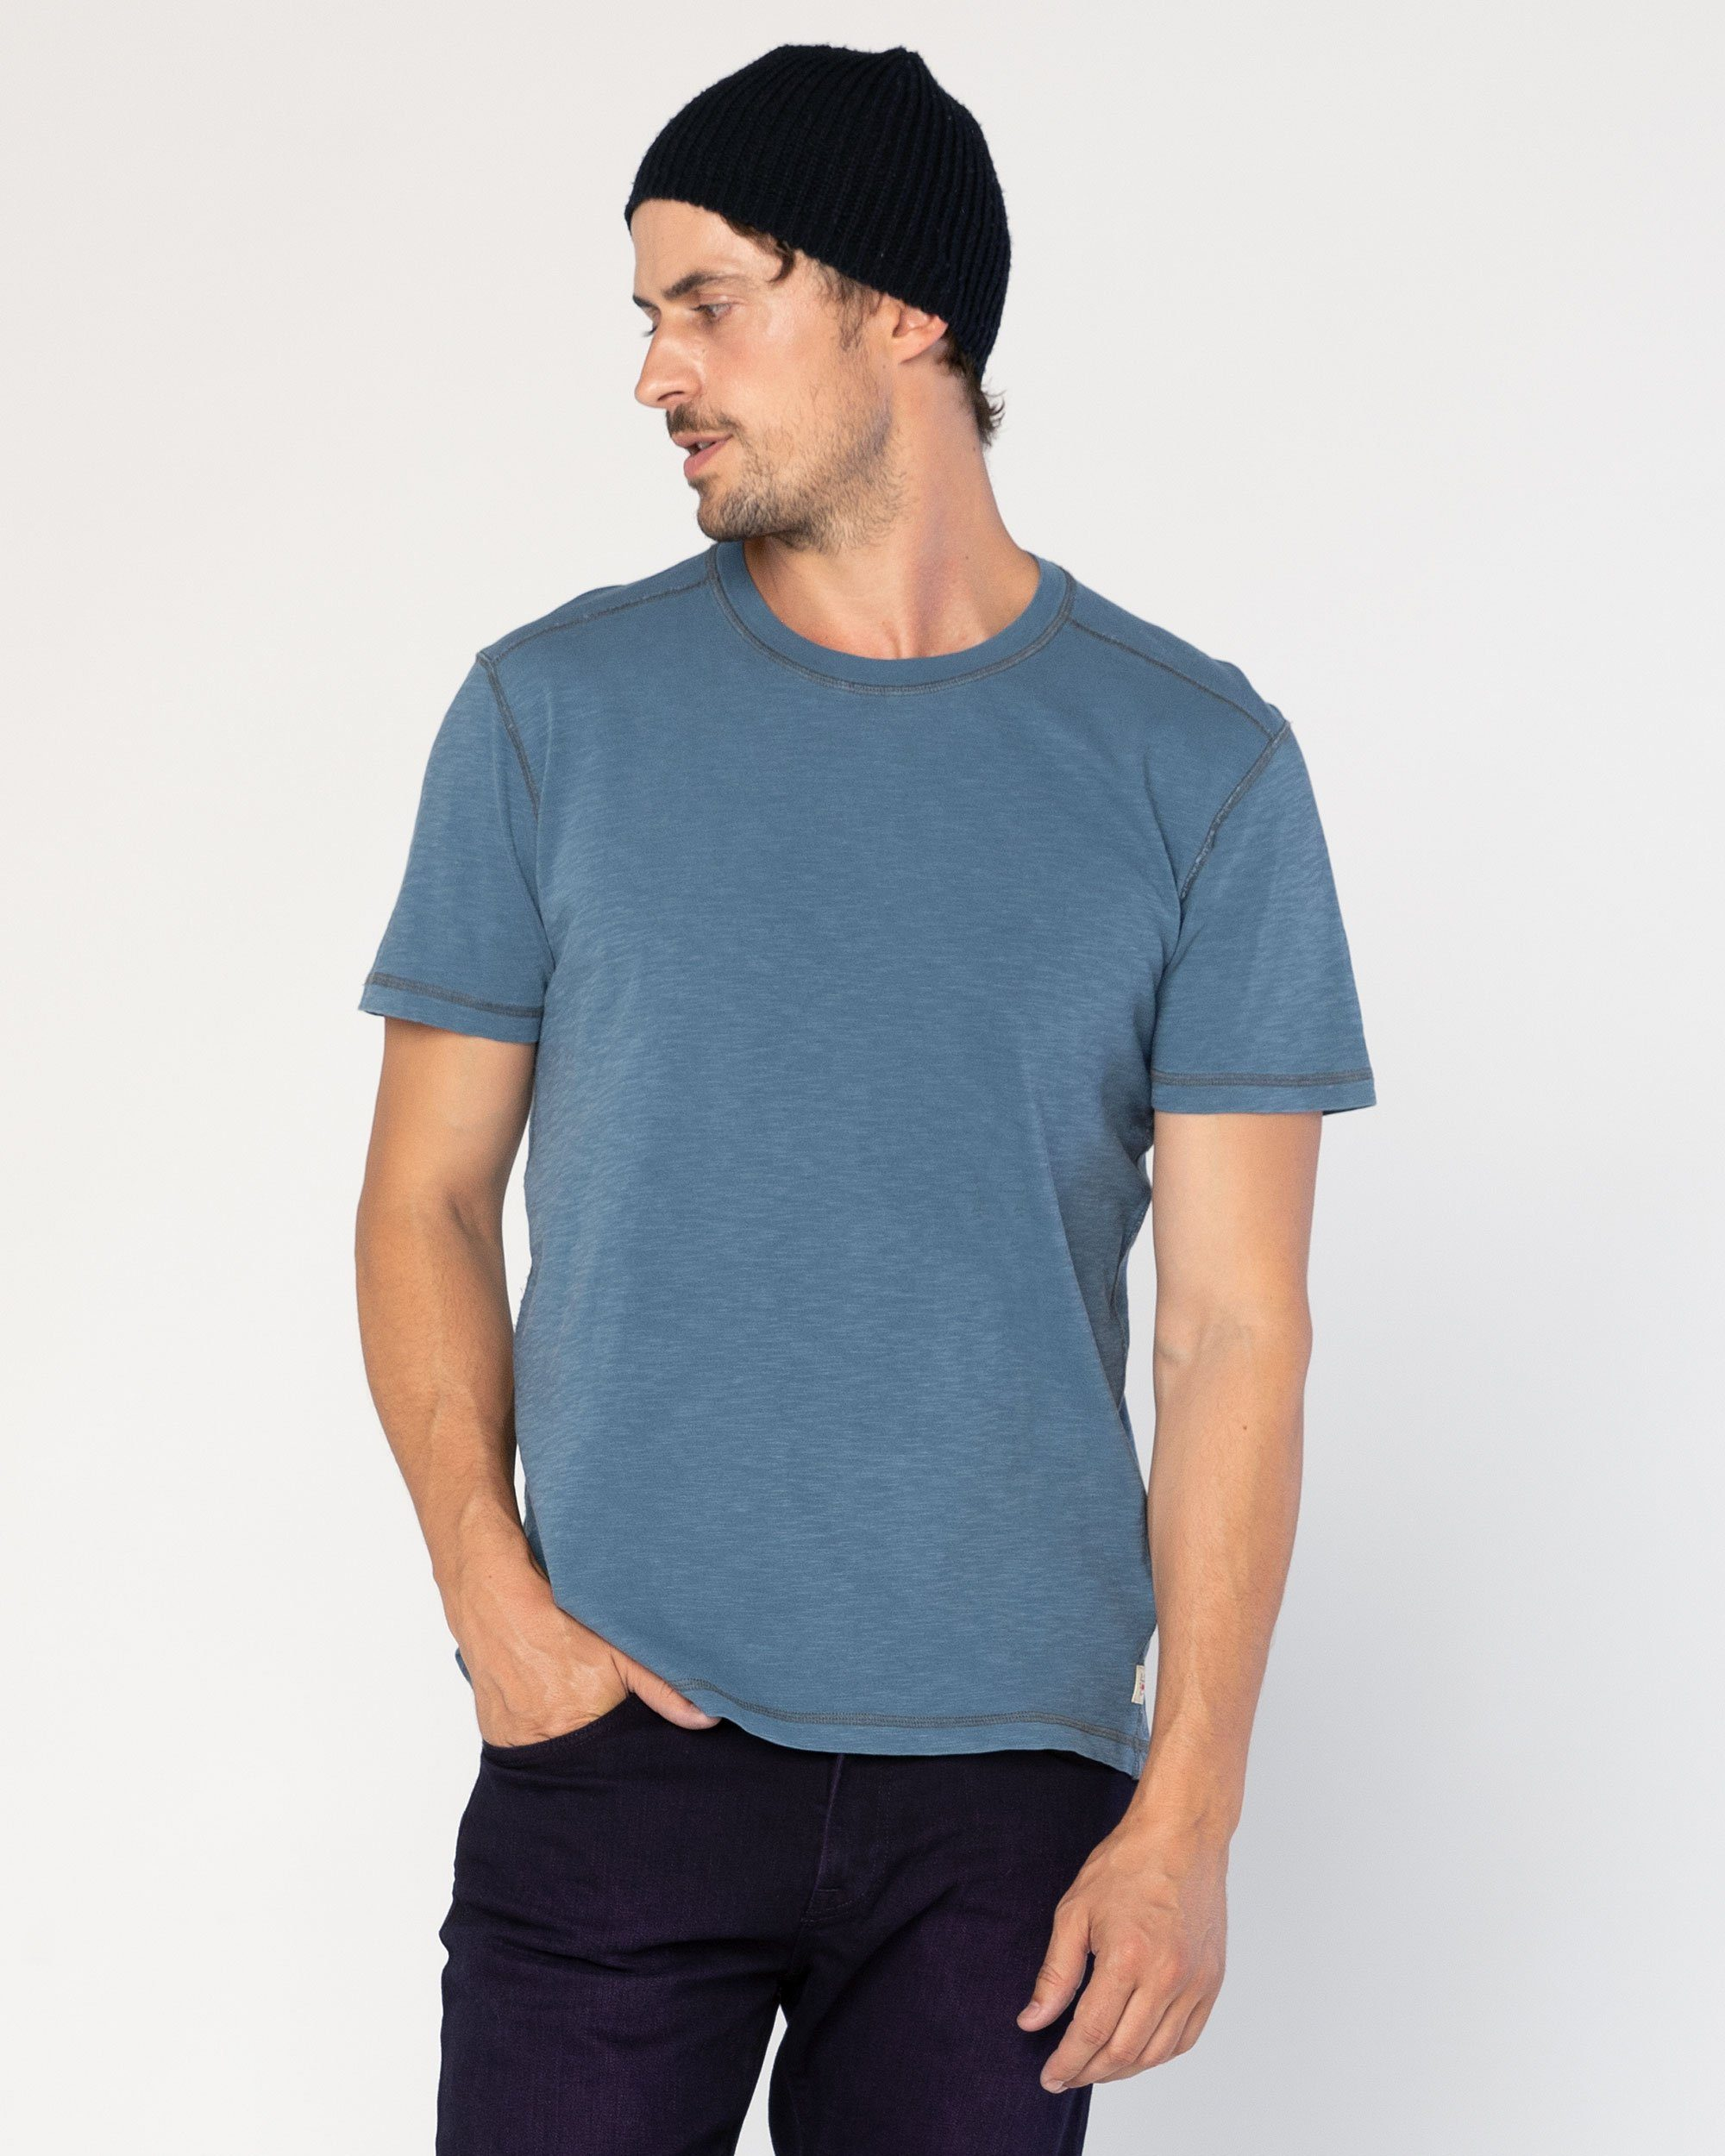 Cliffside Slub Jersey Tee